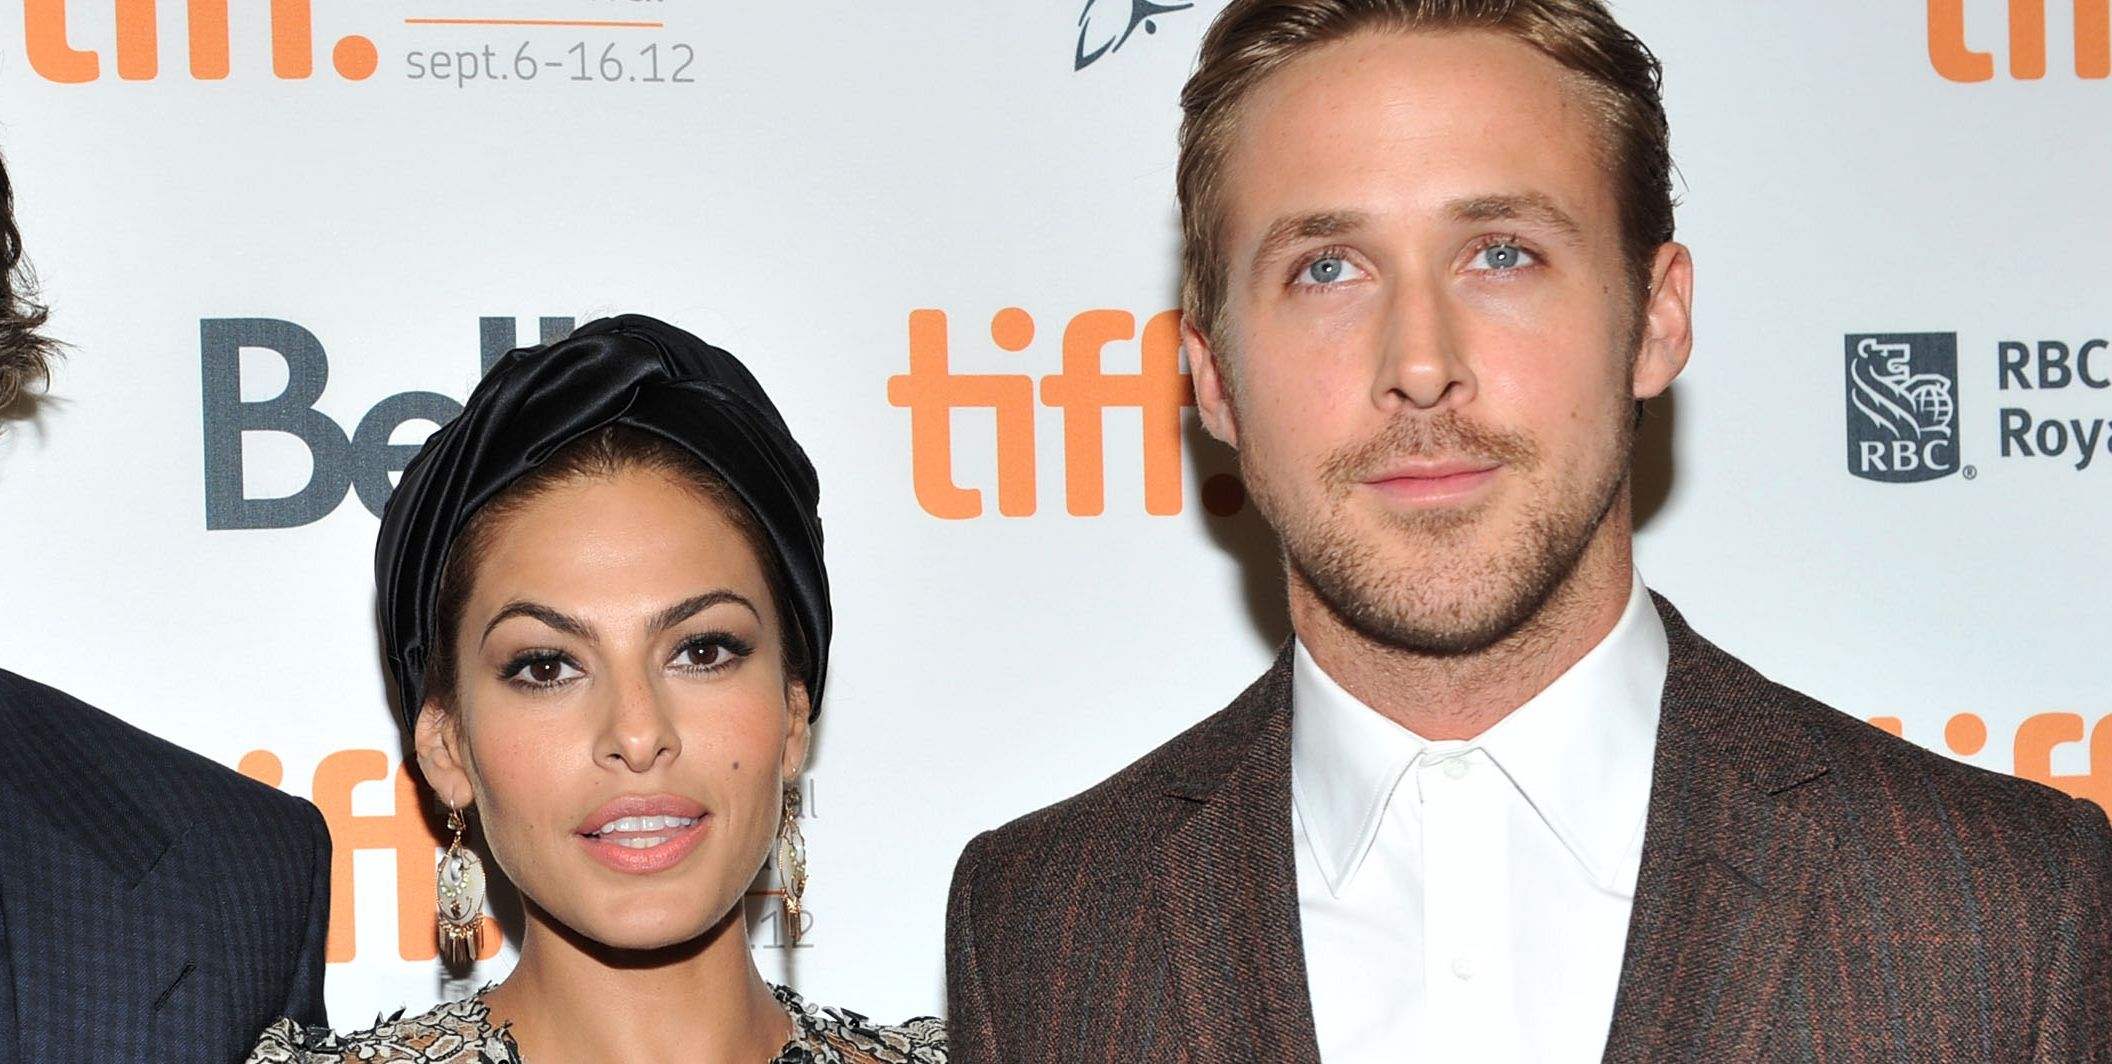 Eva Mendes gives rare insight into Ryan Gosling marriage in new interview